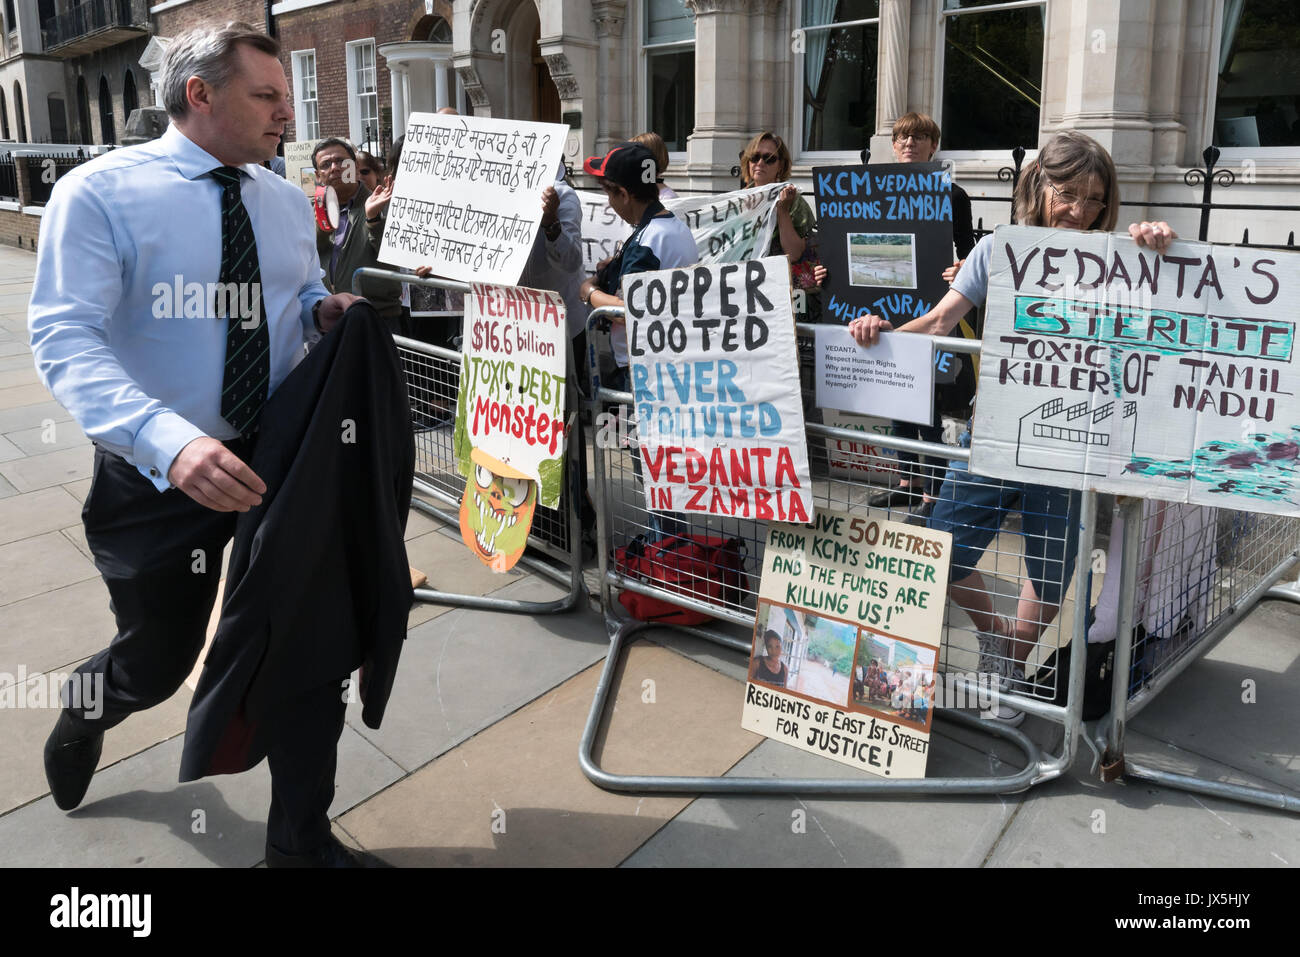 London, UK. 14th Aug, 2017. London, UK. 14th August 2017. A man attending the Vedanta AGM walks past the noisy protest by grass roots campaign Foil Vedanta. The protesters accuse Vedanta of illegal mining in Goa, of increasing harassment, torture and false accusations against tribal activists in Nyamgiri, Odisha, who have used Indian laws to stop bauxite mining of their sacred mountain, eleven years of ruinous and continuing pollution by Konkola Copper Mines (KCM) in Zambia, where they say the company have fraudulently avoided taxes and failed to publish mandatory accounts and other offen - Stock Image